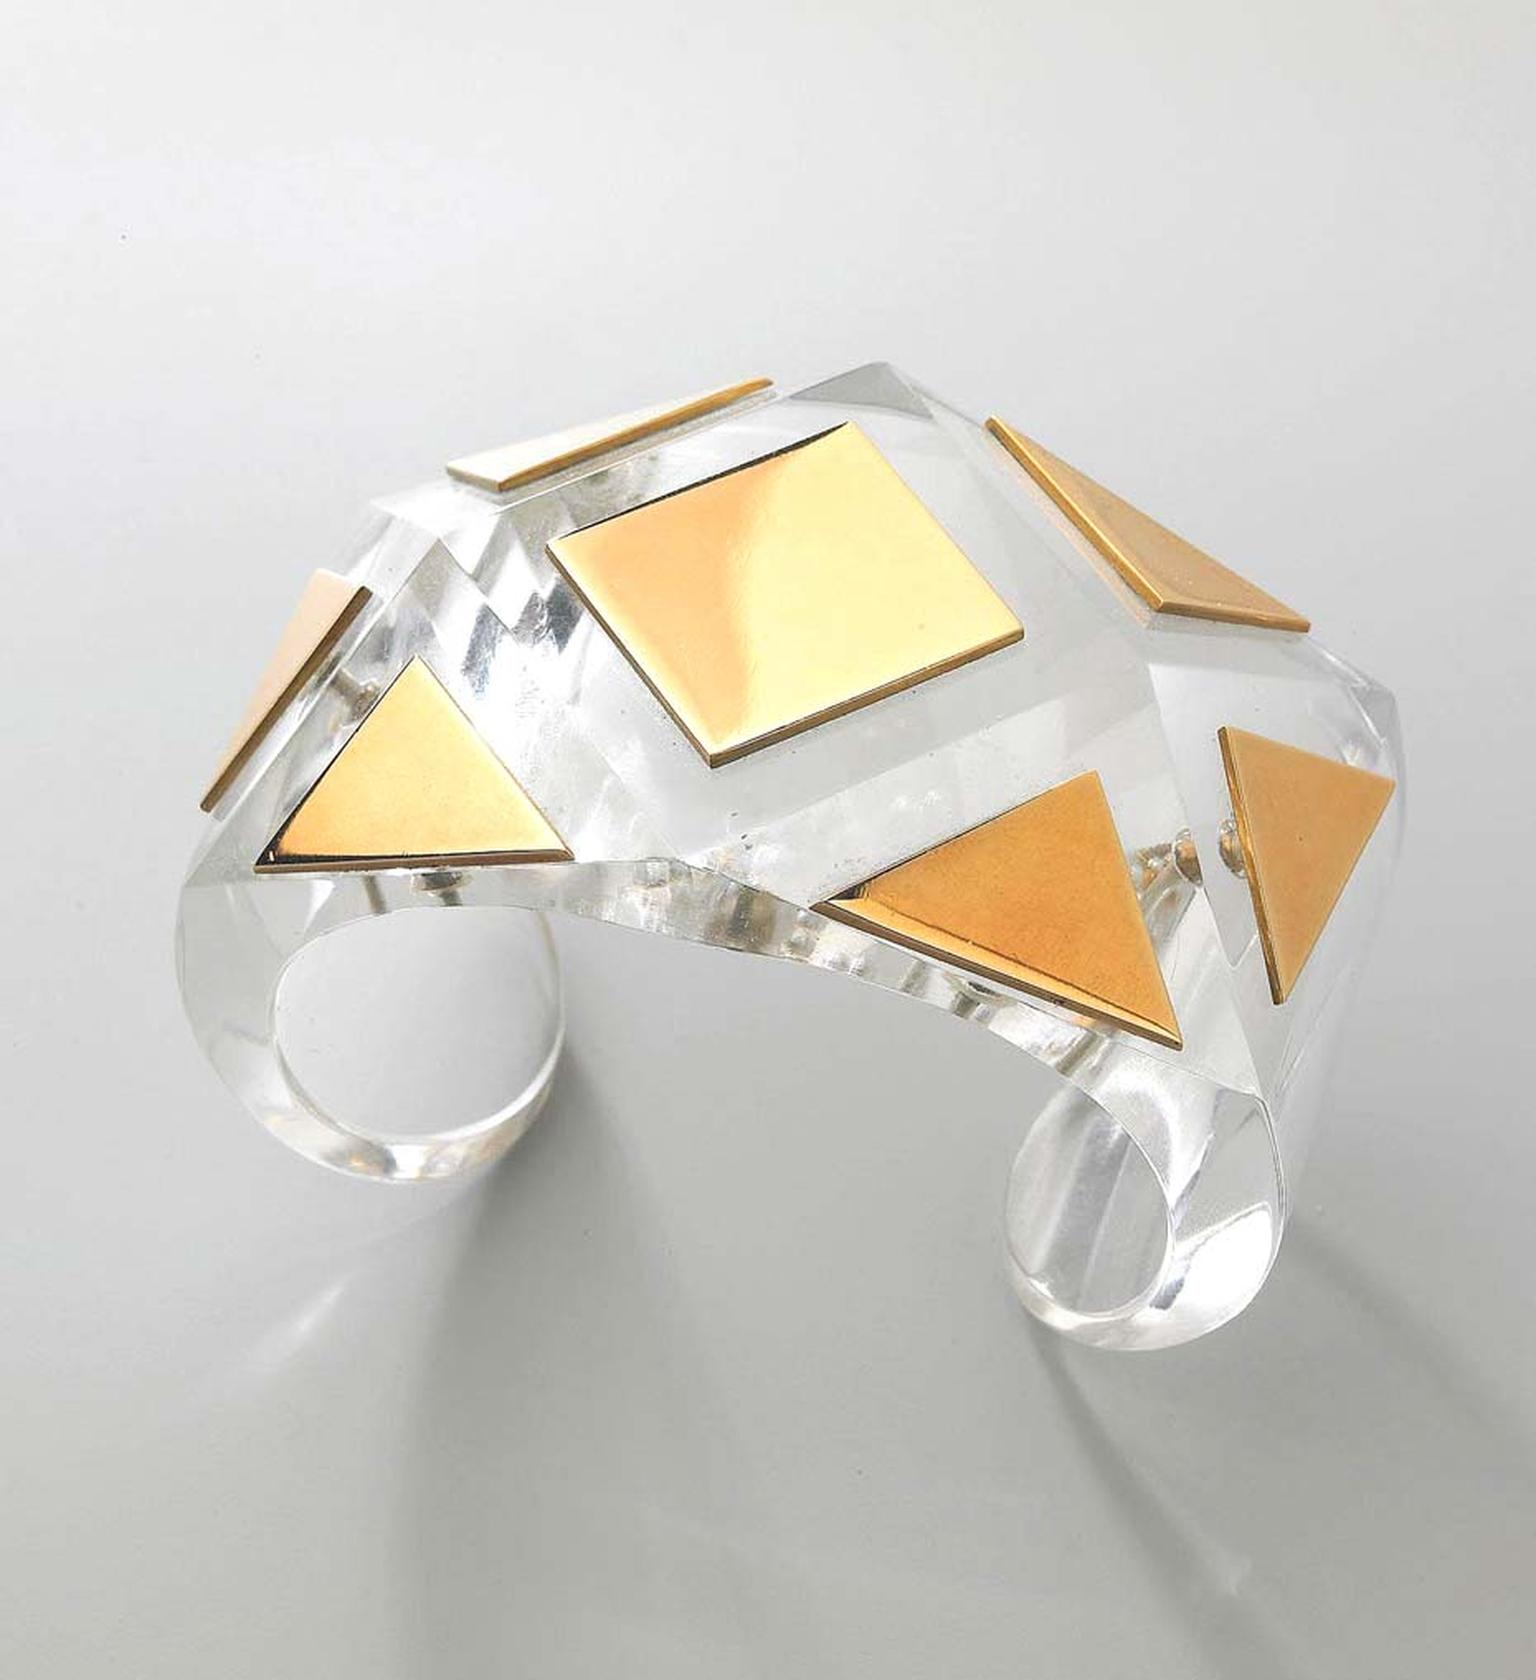 Suzanne Belperron bracelet in rock crystal and gold, circa 1930s. Exhibited by Primavera Gallery.